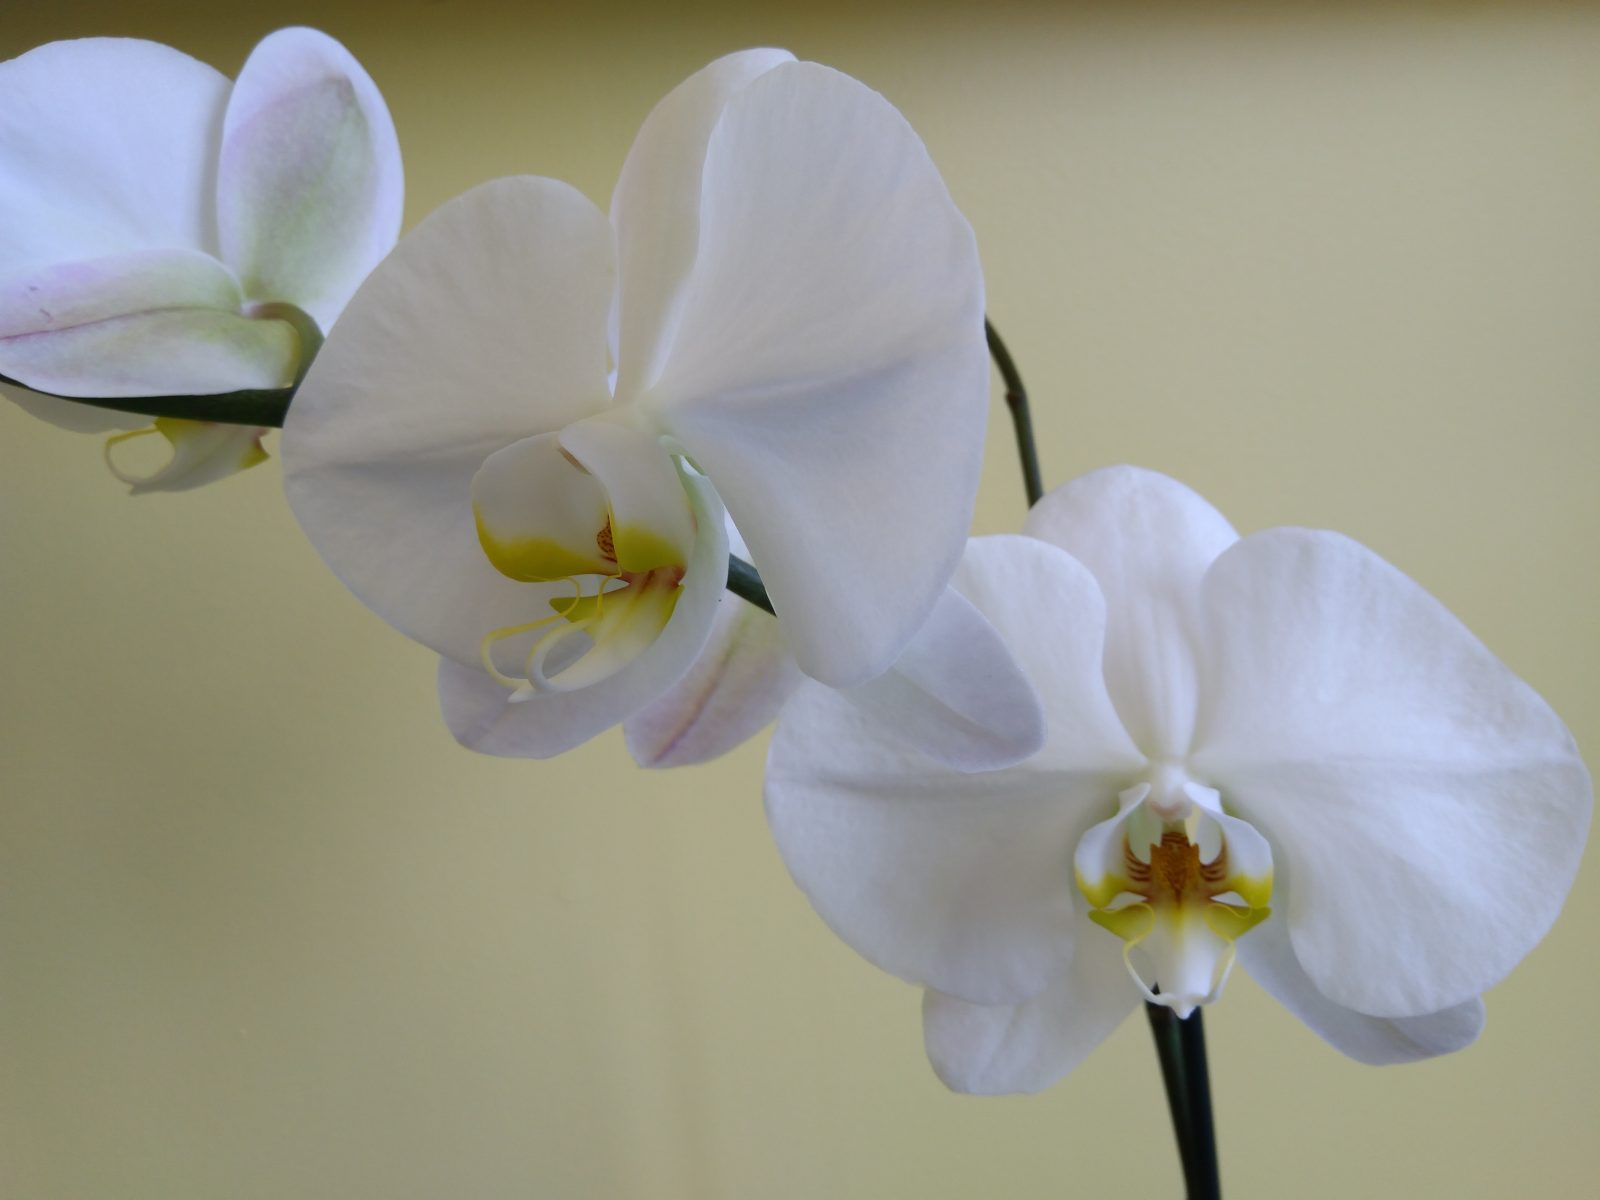 Healthy looking blooming orchid that has obviously been taken care of extremely well